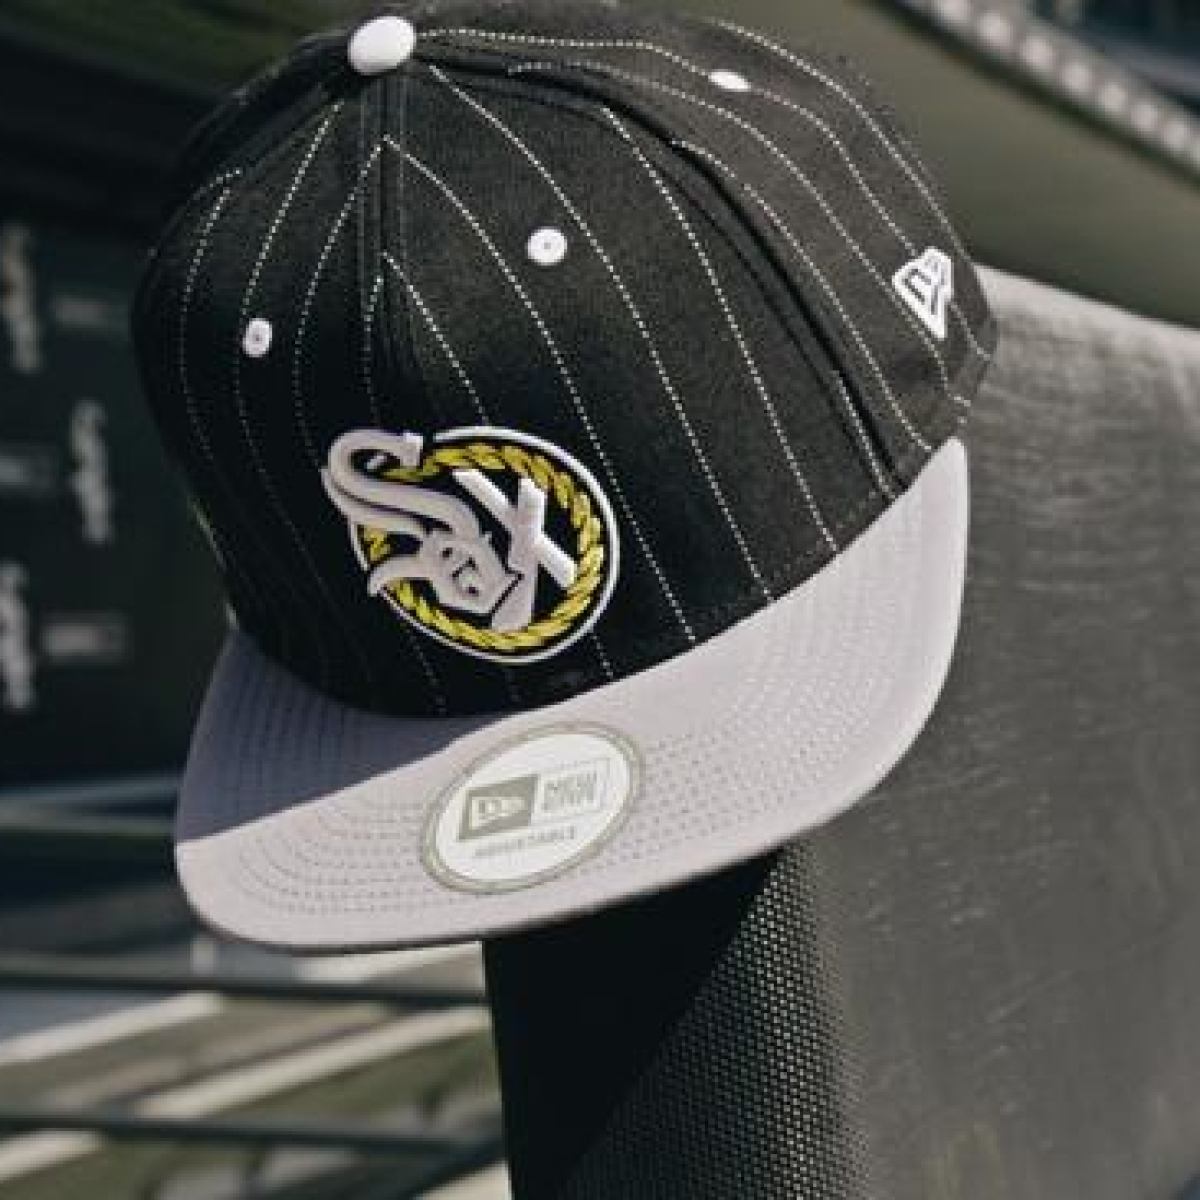 d8c8c712aac Should You Ever Wear Another Team s Baseball Cap  - Men s Journal